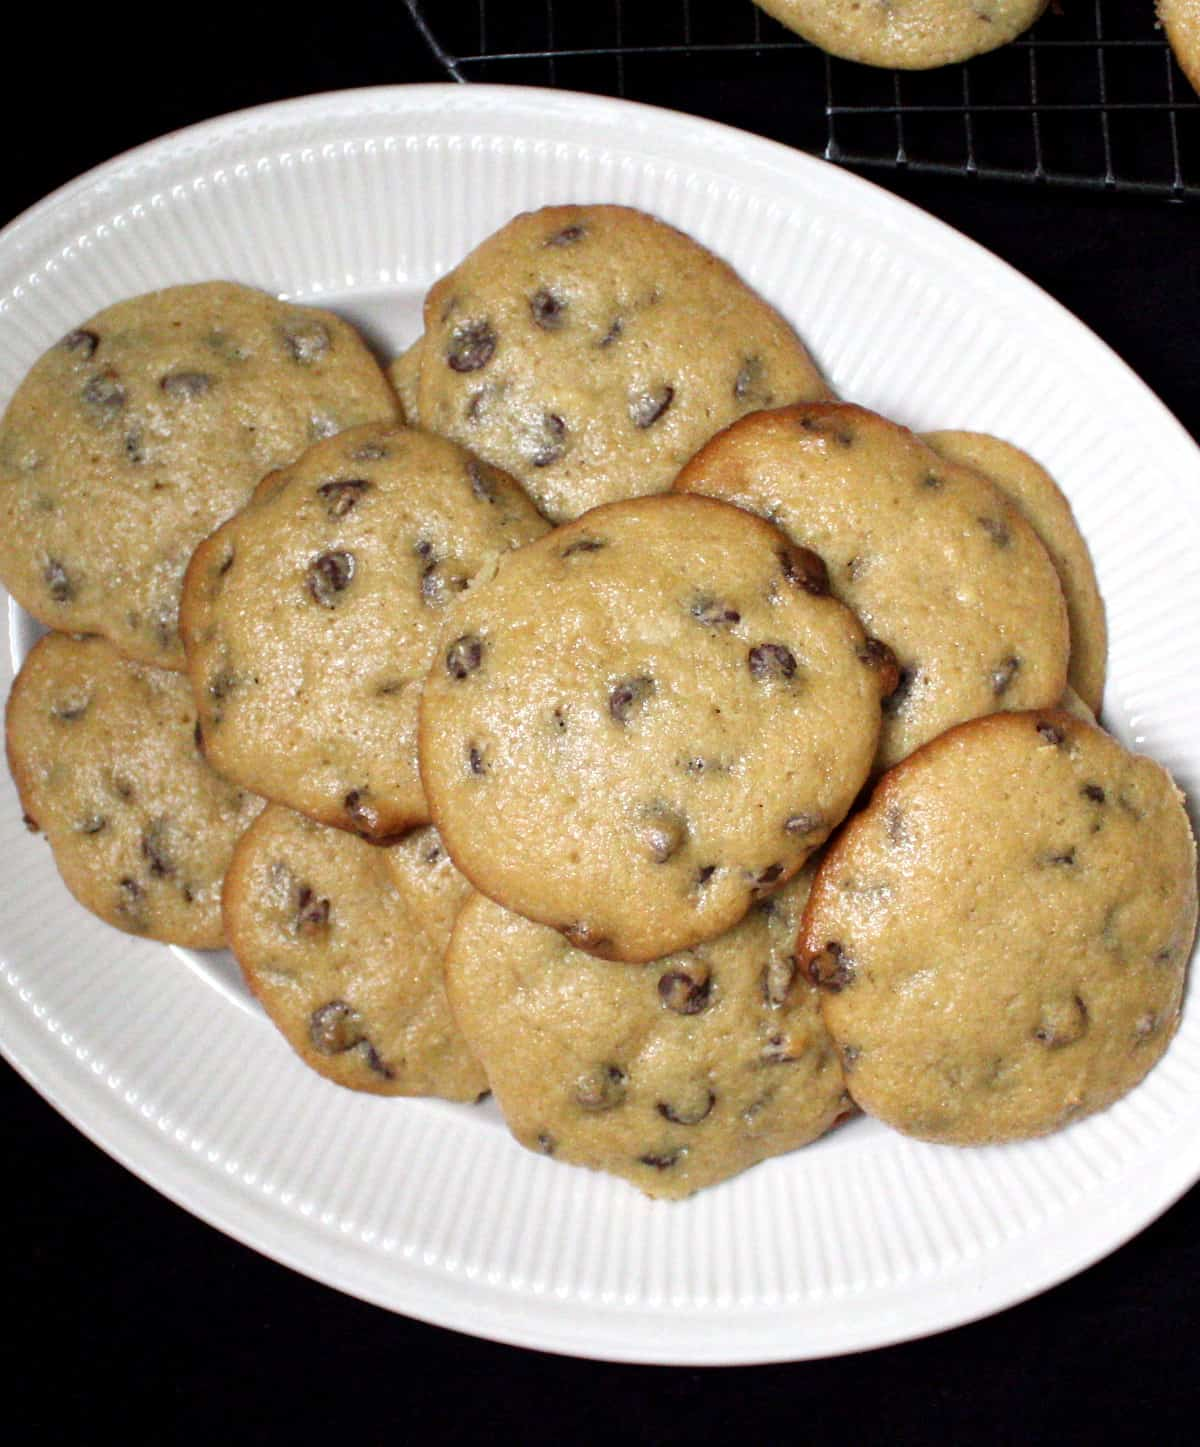 An overhead shot of vegan sourdough chocolate chip cookies on an oval white plate.